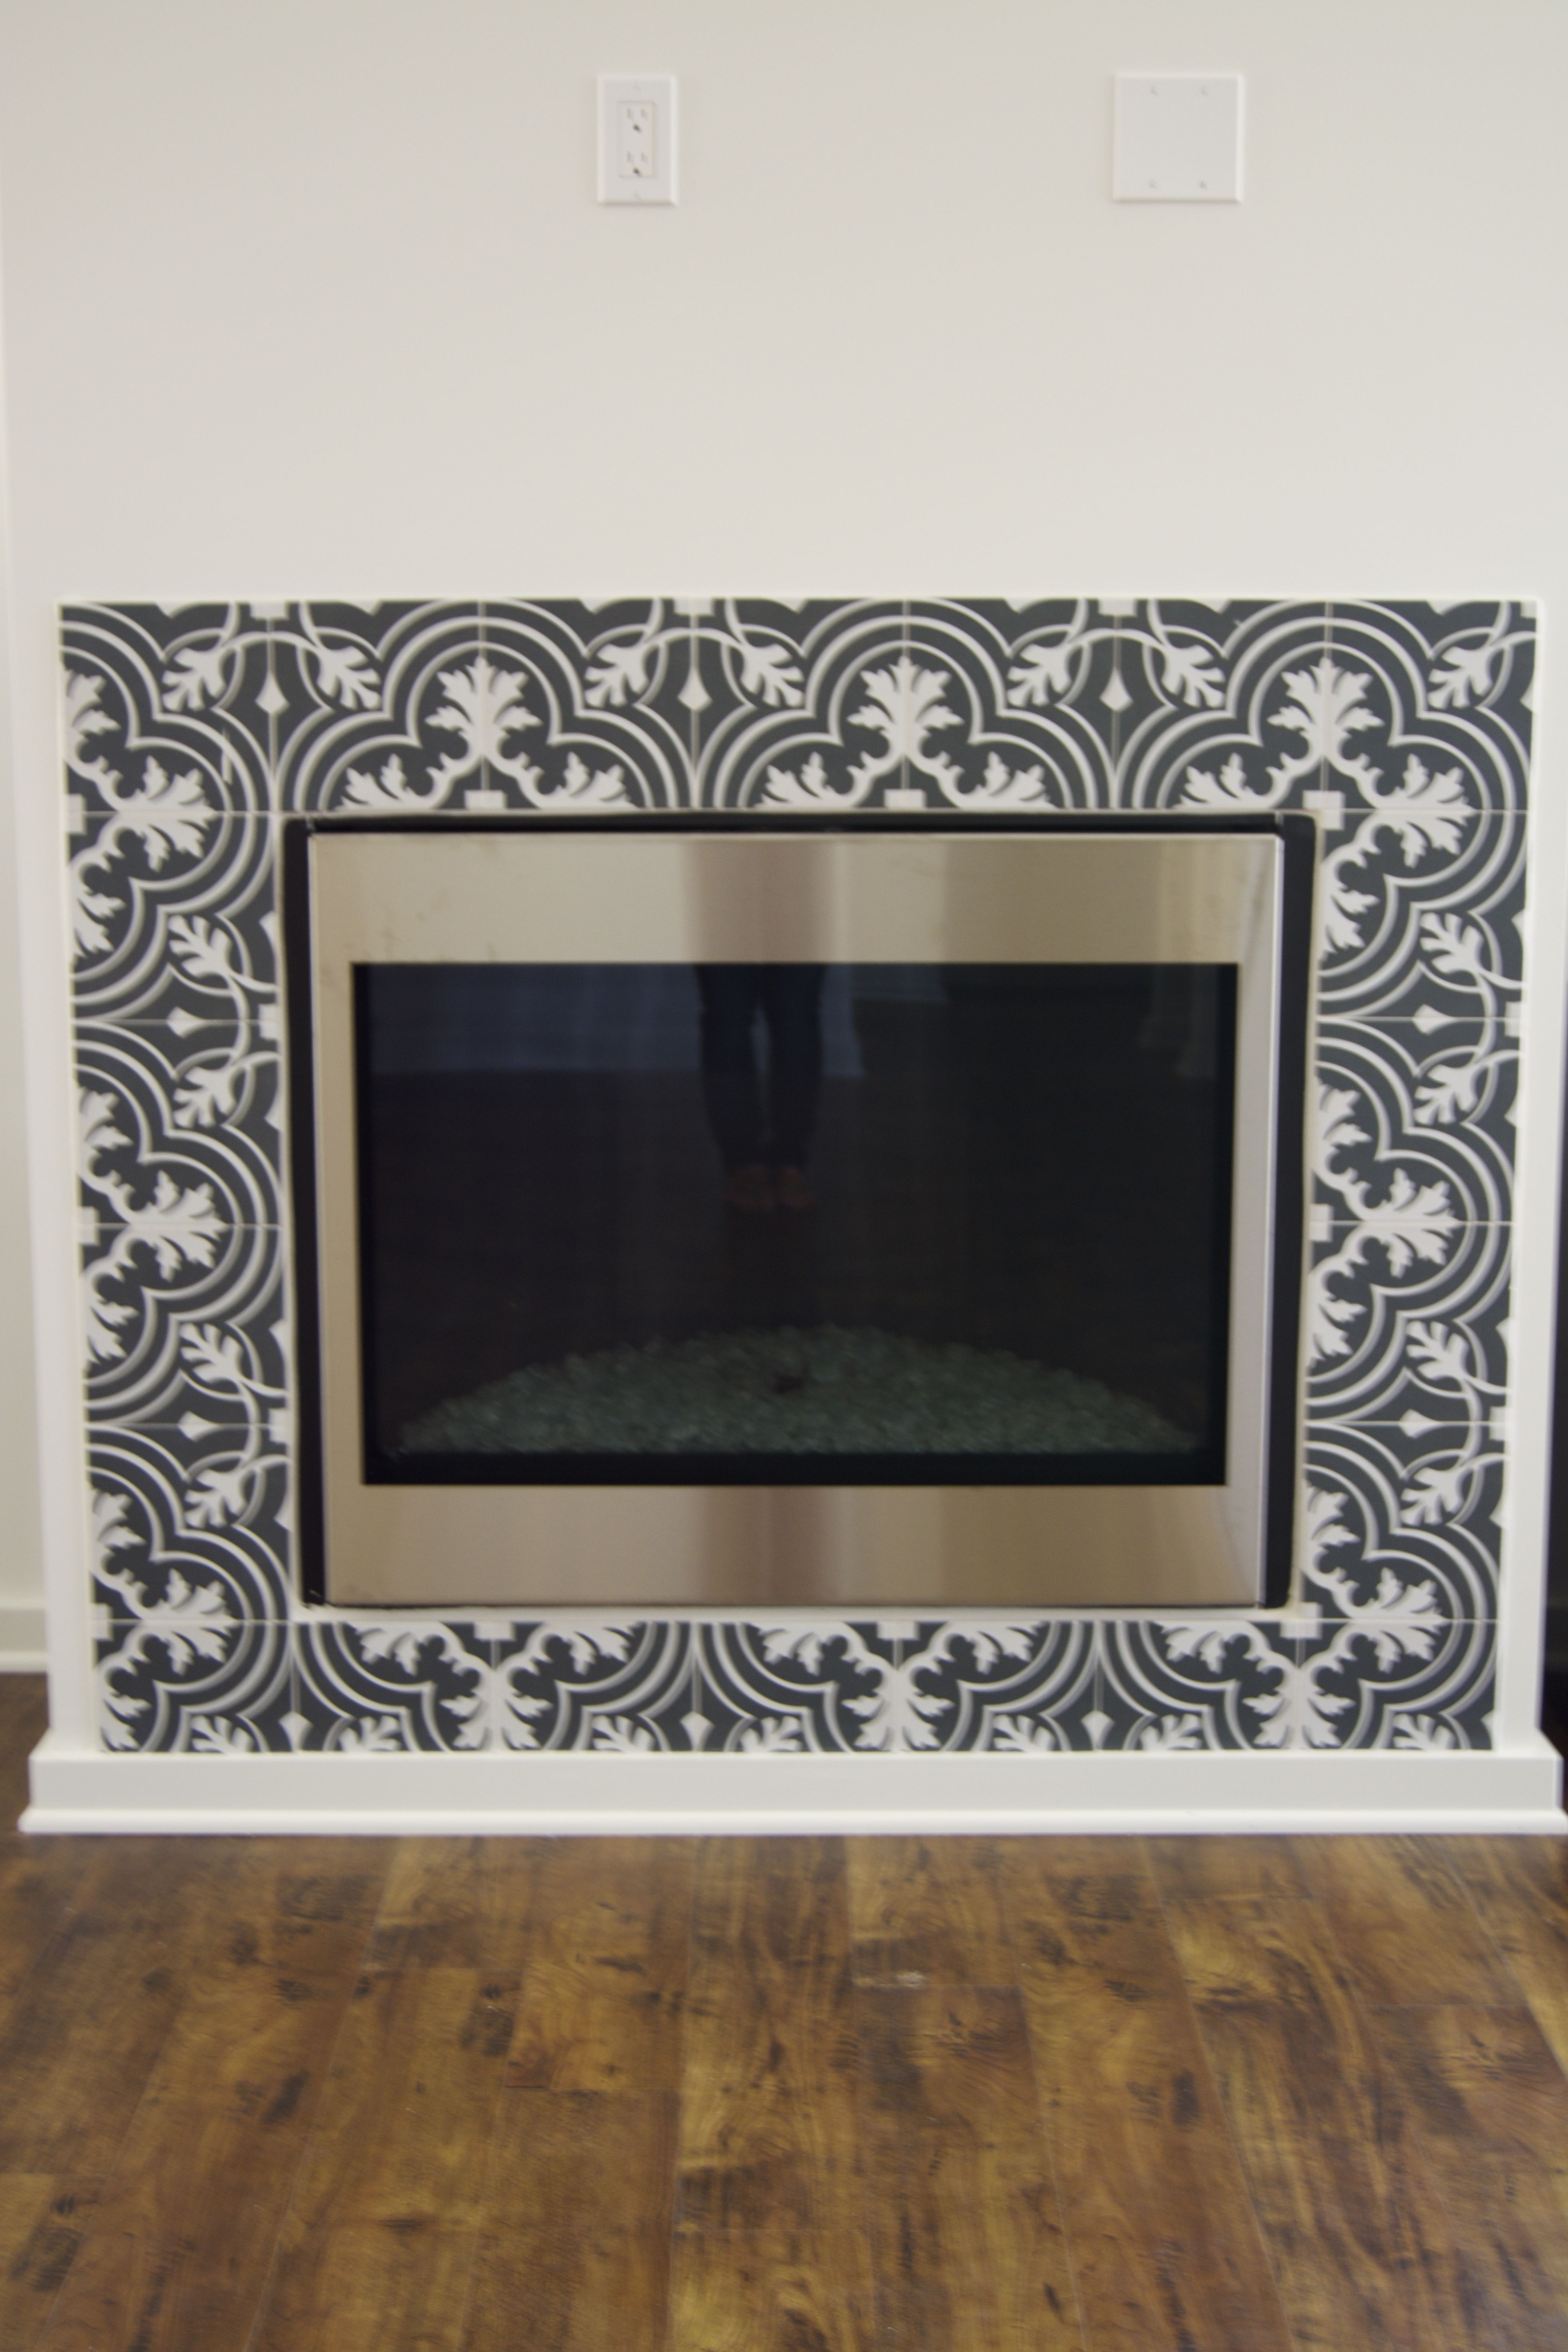 Black and white patterned ceramic tile merola twenties mosaic black and white patterned ceramic tile merola twenties mosaic fireplace surround dailygadgetfo Images